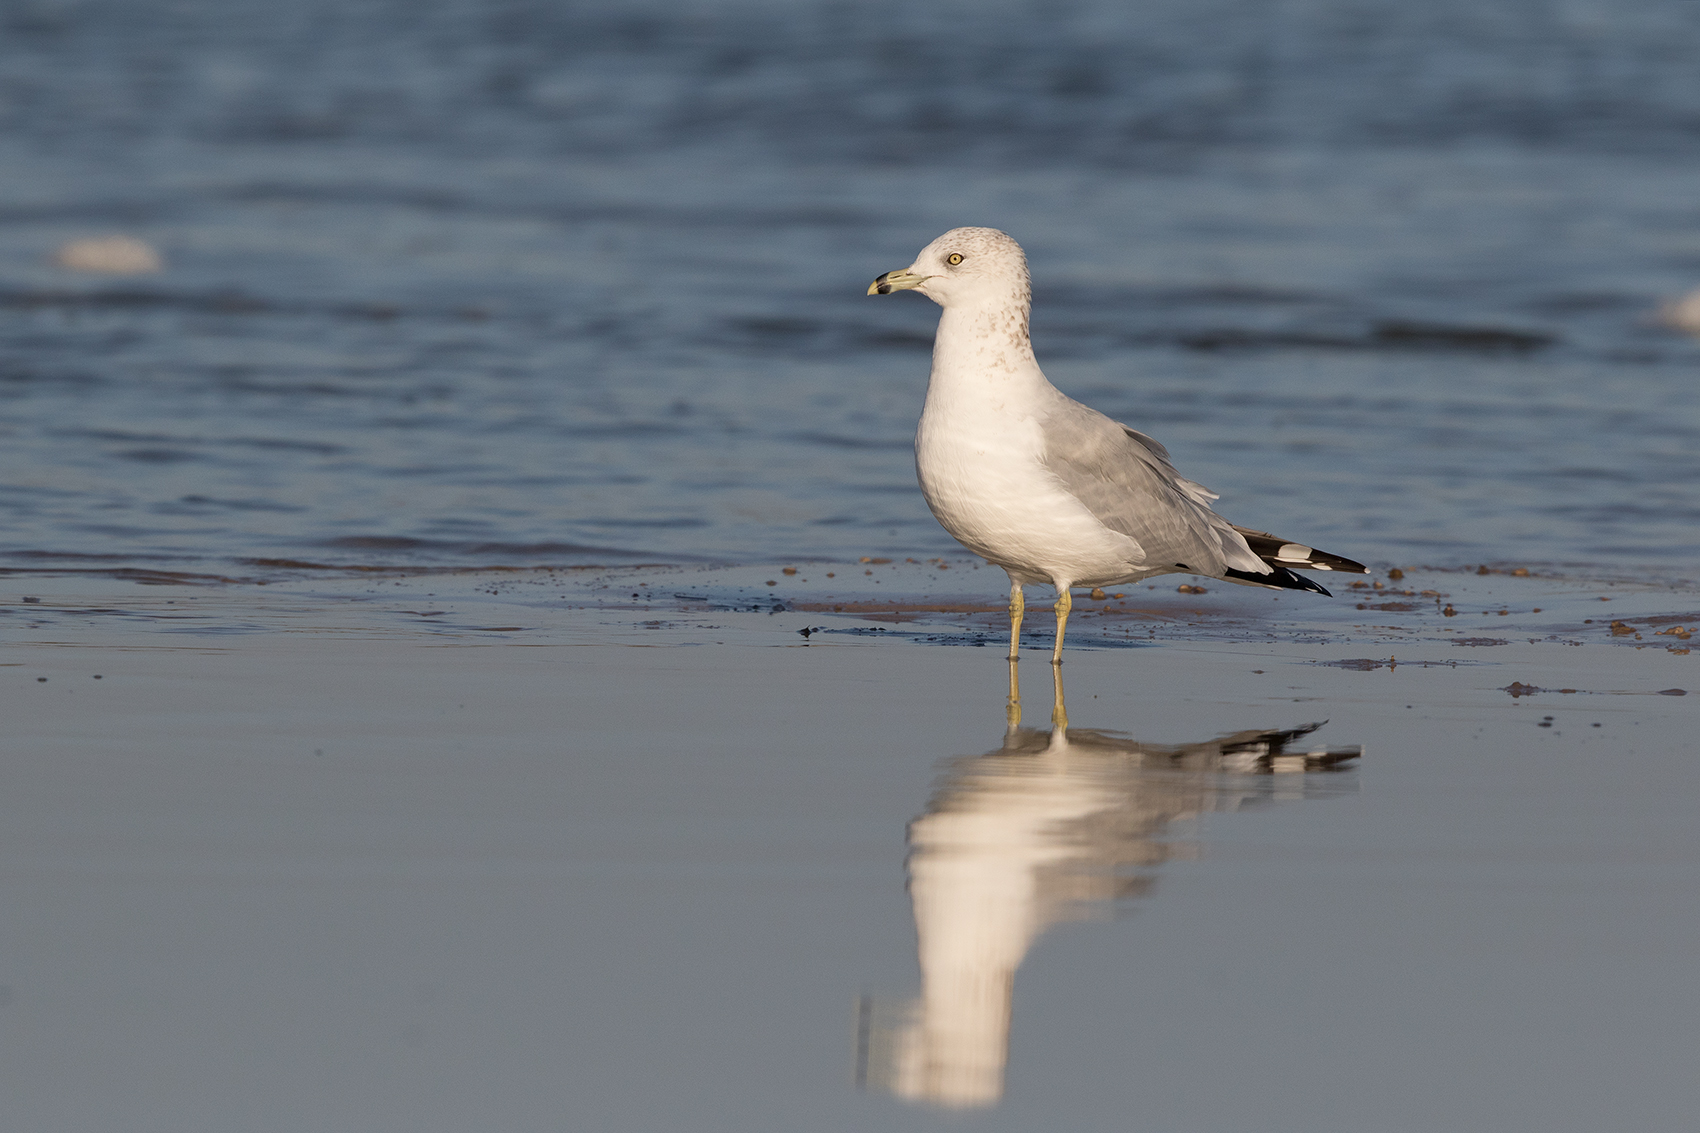 RING-BILLED GULL - ARANSAS COUNTY TX OCT. 2016